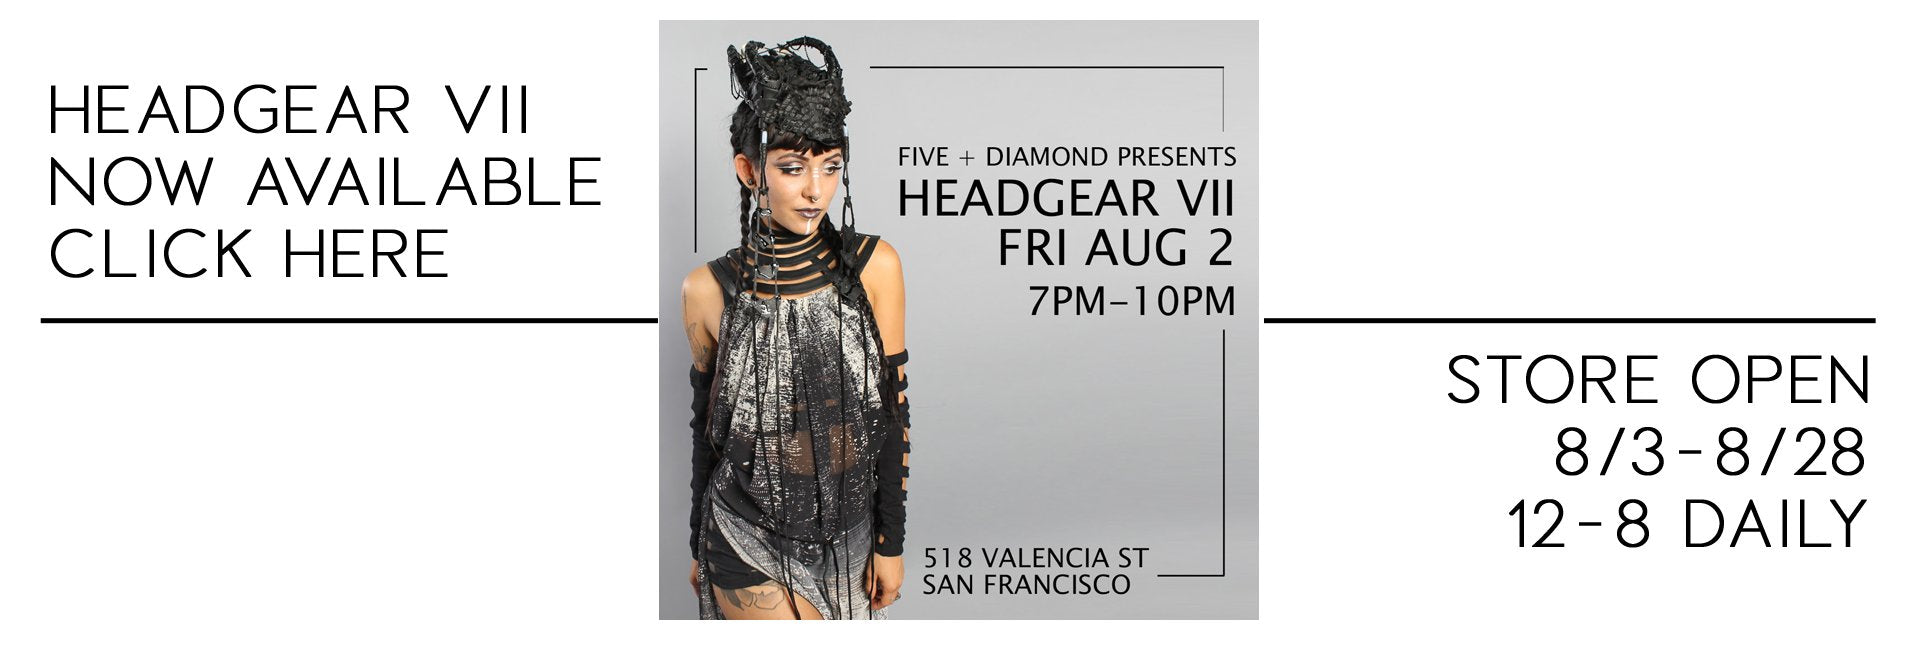 Five and Diamond Pre-Playa Loft Sale - Independent Designer Shopping Event to Prepare for the Playa